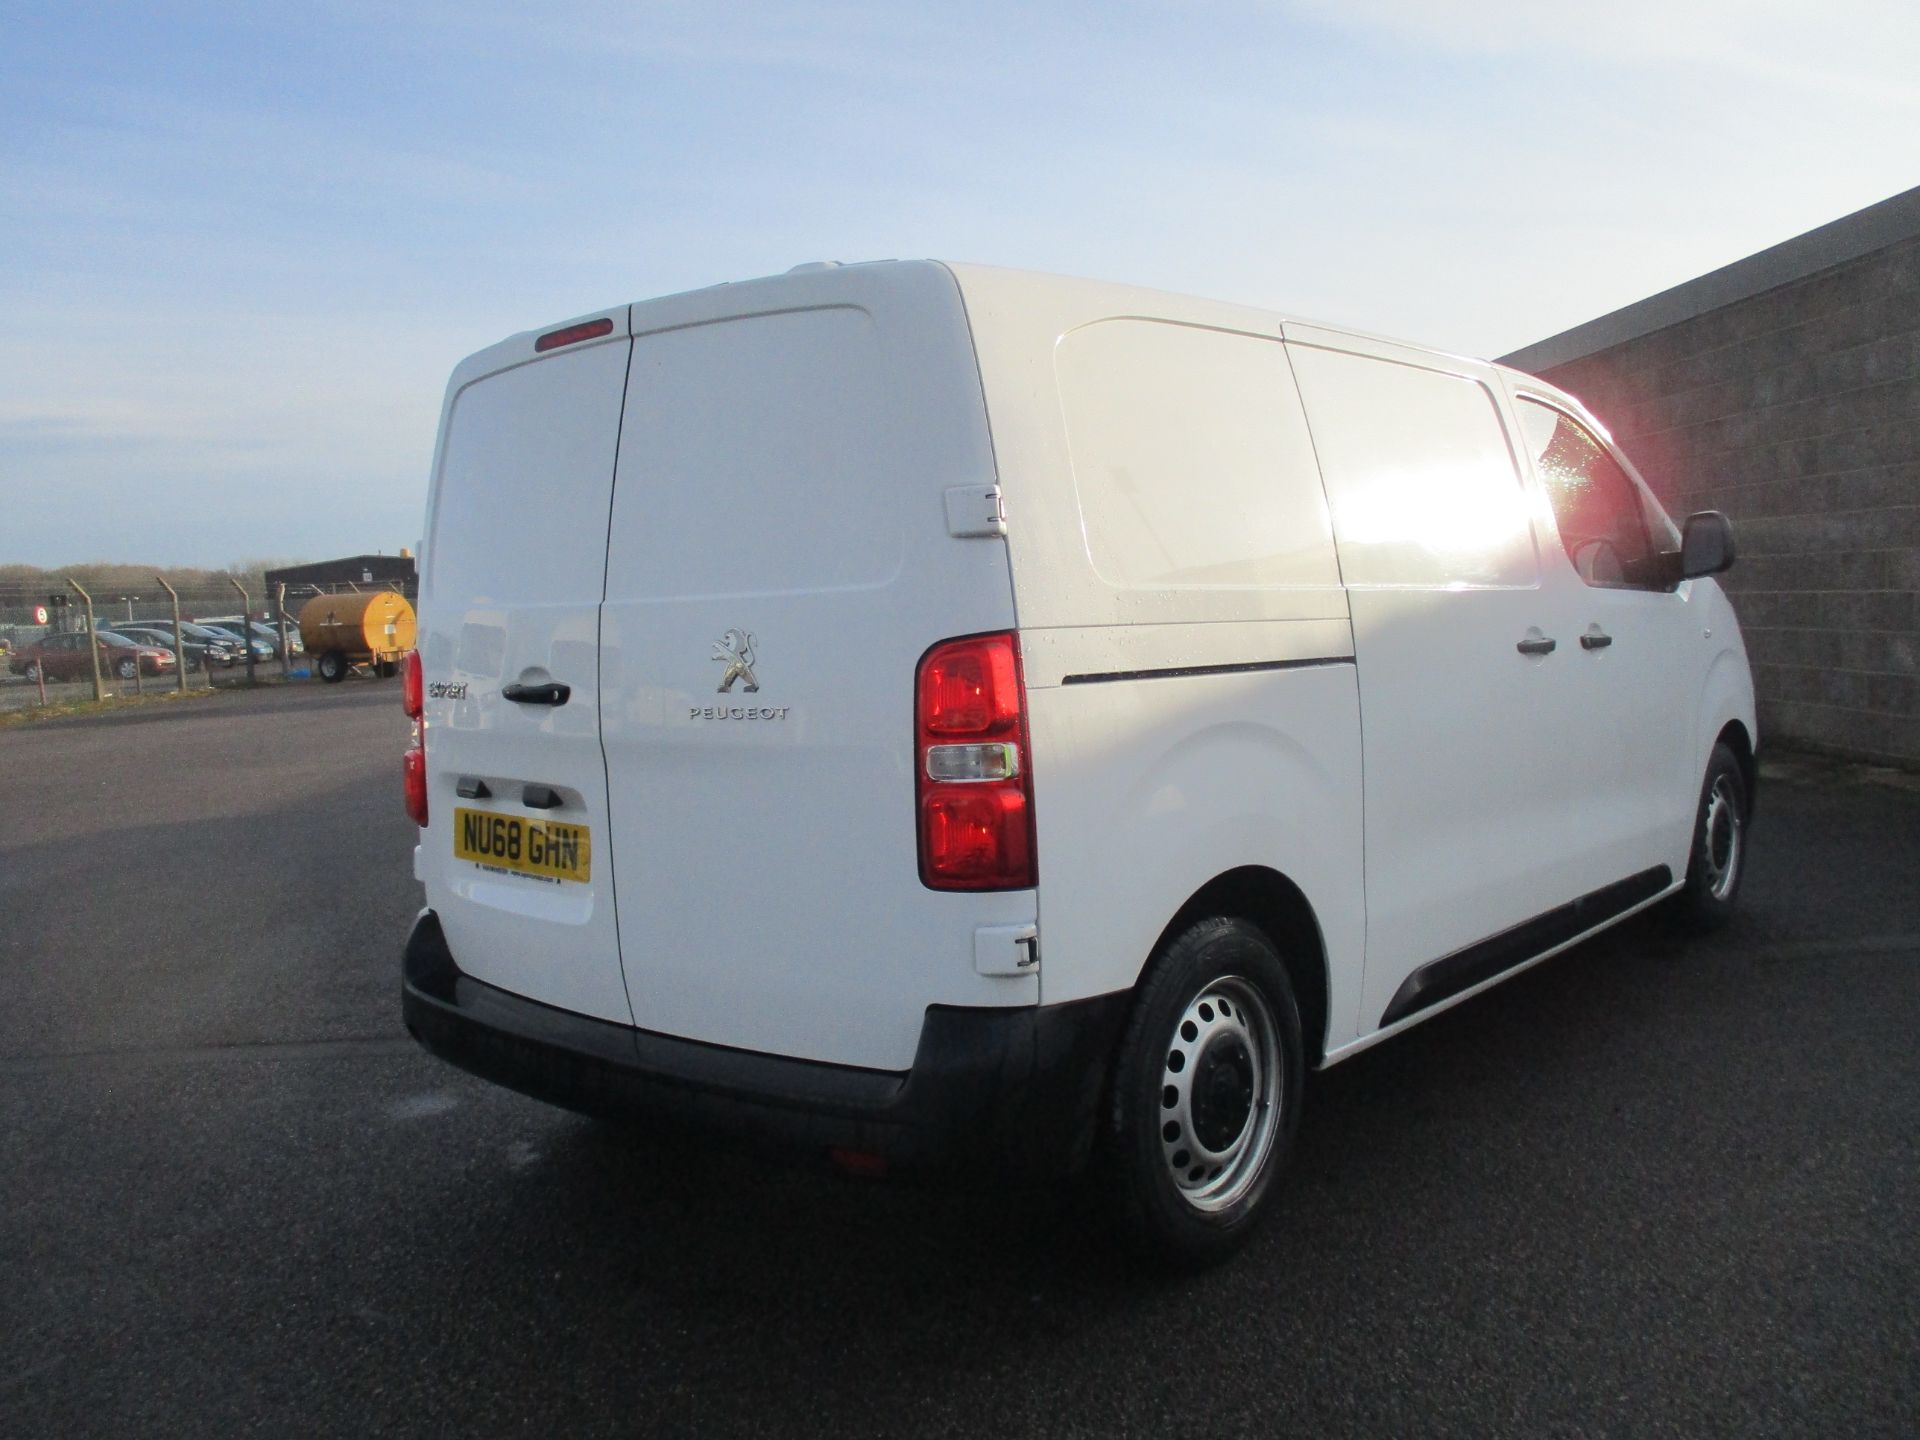 2018 Peugeot Expert STANDARD 1000 1.6 BLUE HDI 95 PROFESSIONAL EURO 6. AIR CON (NU68GHN) Image 5